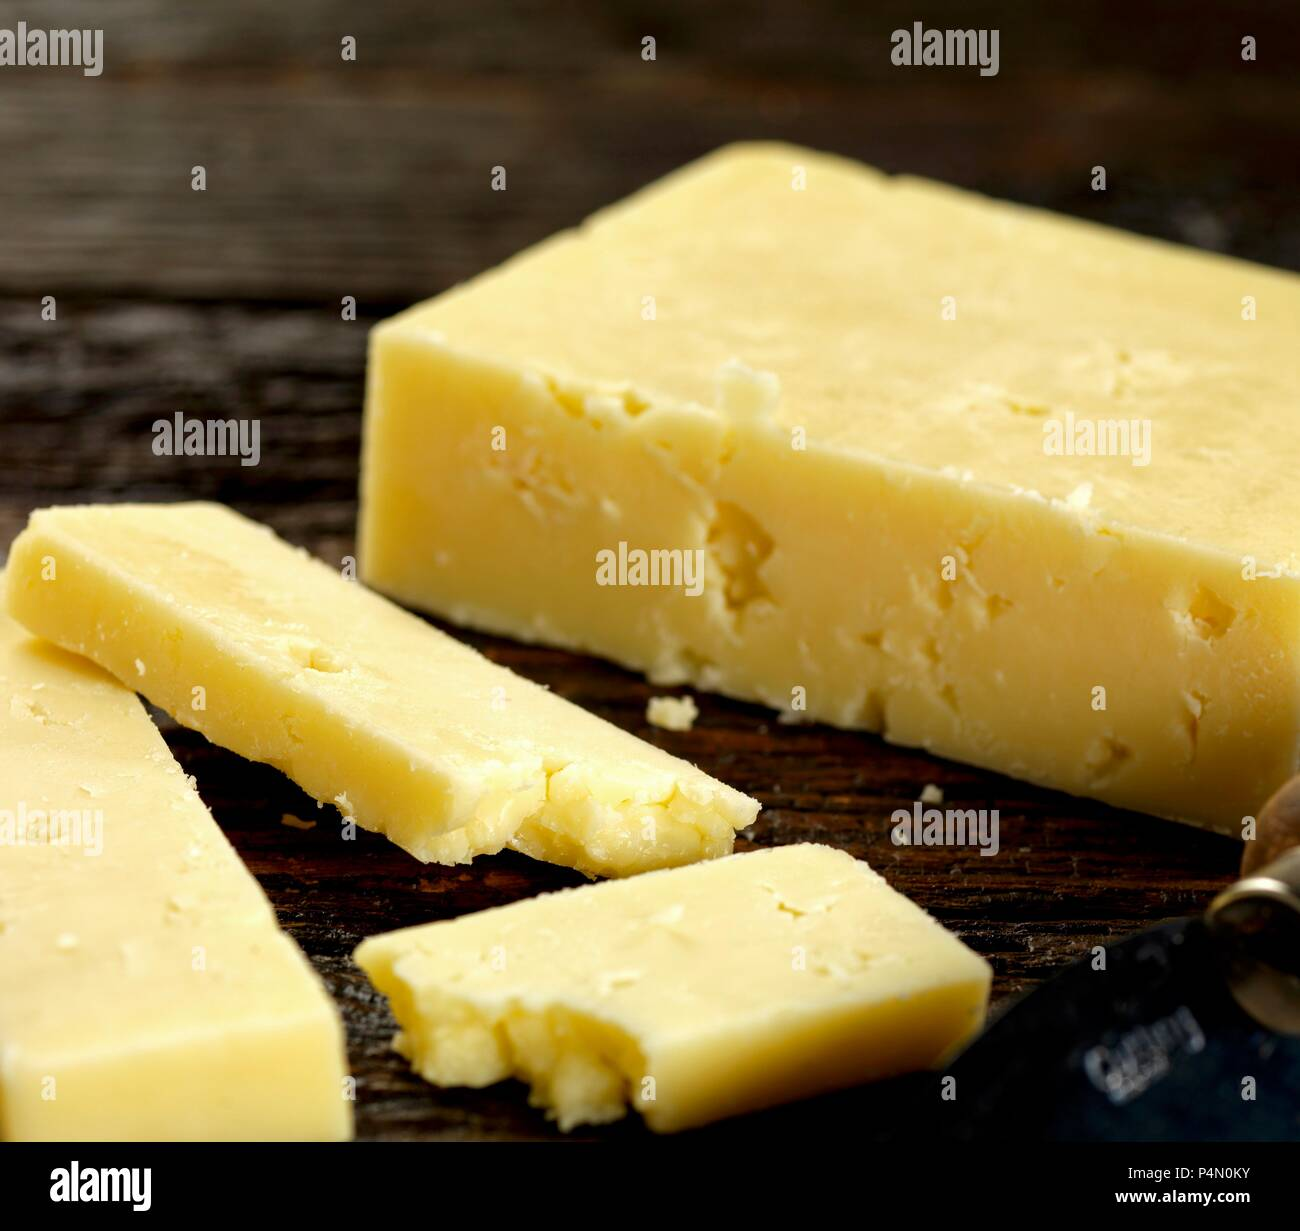 Cheddar cheese on dark wood - Stock Image